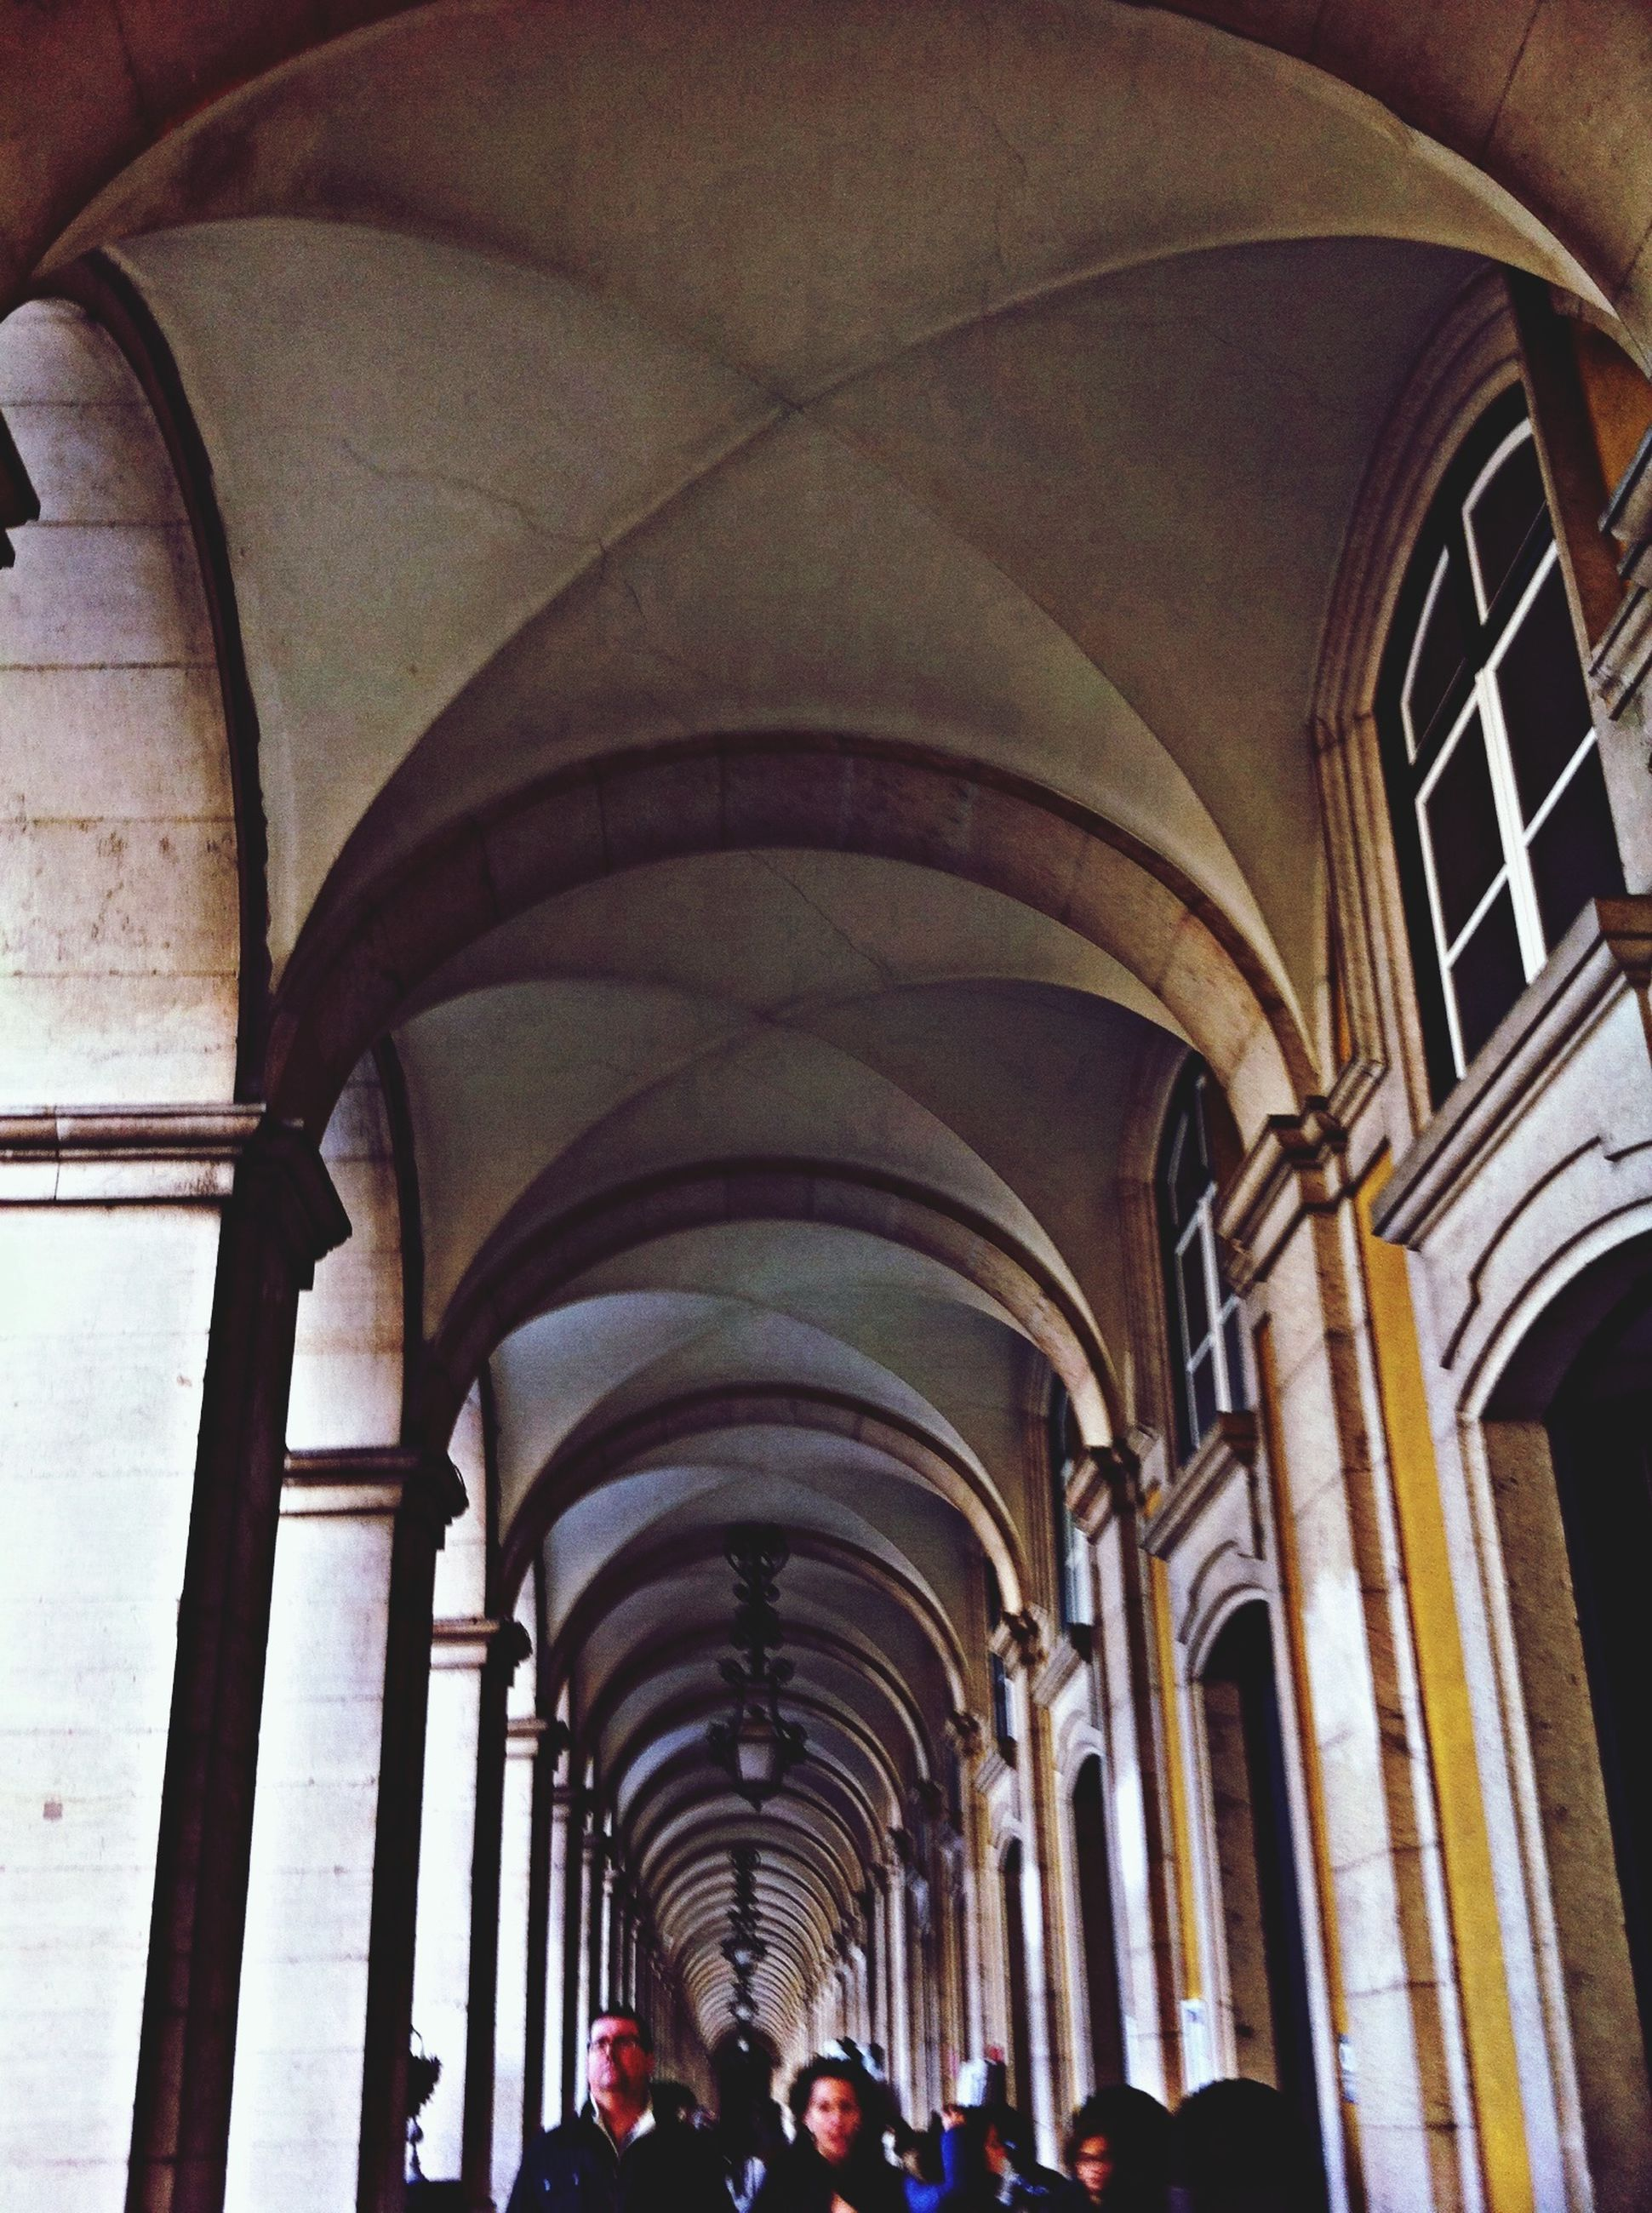 arch, indoors, architecture, built structure, person, ceiling, men, architectural column, lifestyles, large group of people, archway, travel, tourist, leisure activity, walking, arched, history, incidental people, illuminated